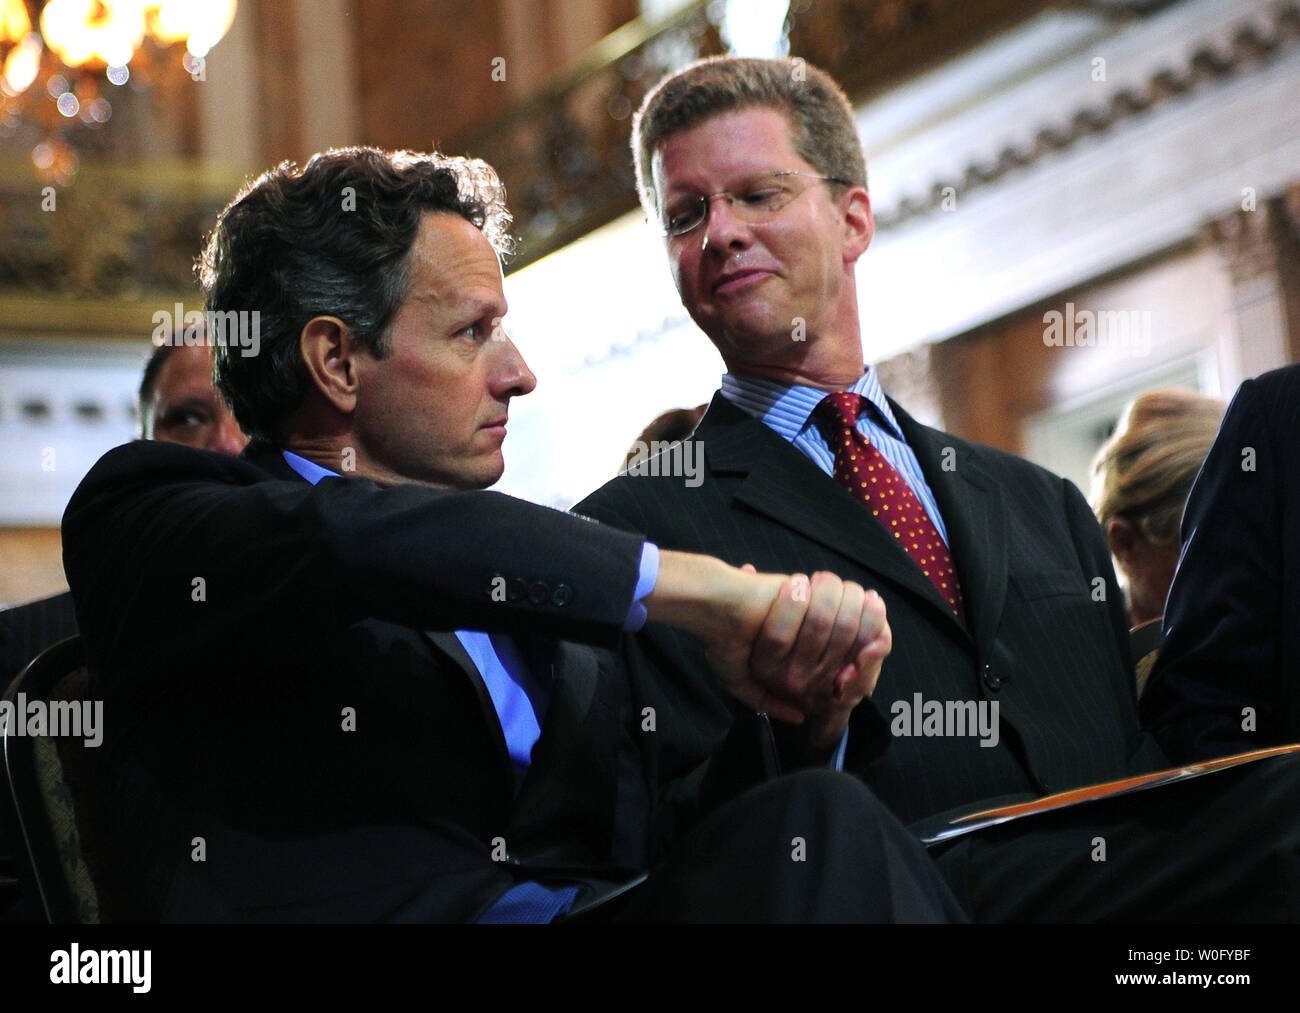 Treasury Secretary Tim Geithner (C) shakes hands with HUD Secretary Shaun Donovan after the two spoke at a conference on the future of housing finance at the Treasury Department in Washington on August 17, 2010.   UPI/Kevin Dietsch Stock Photo